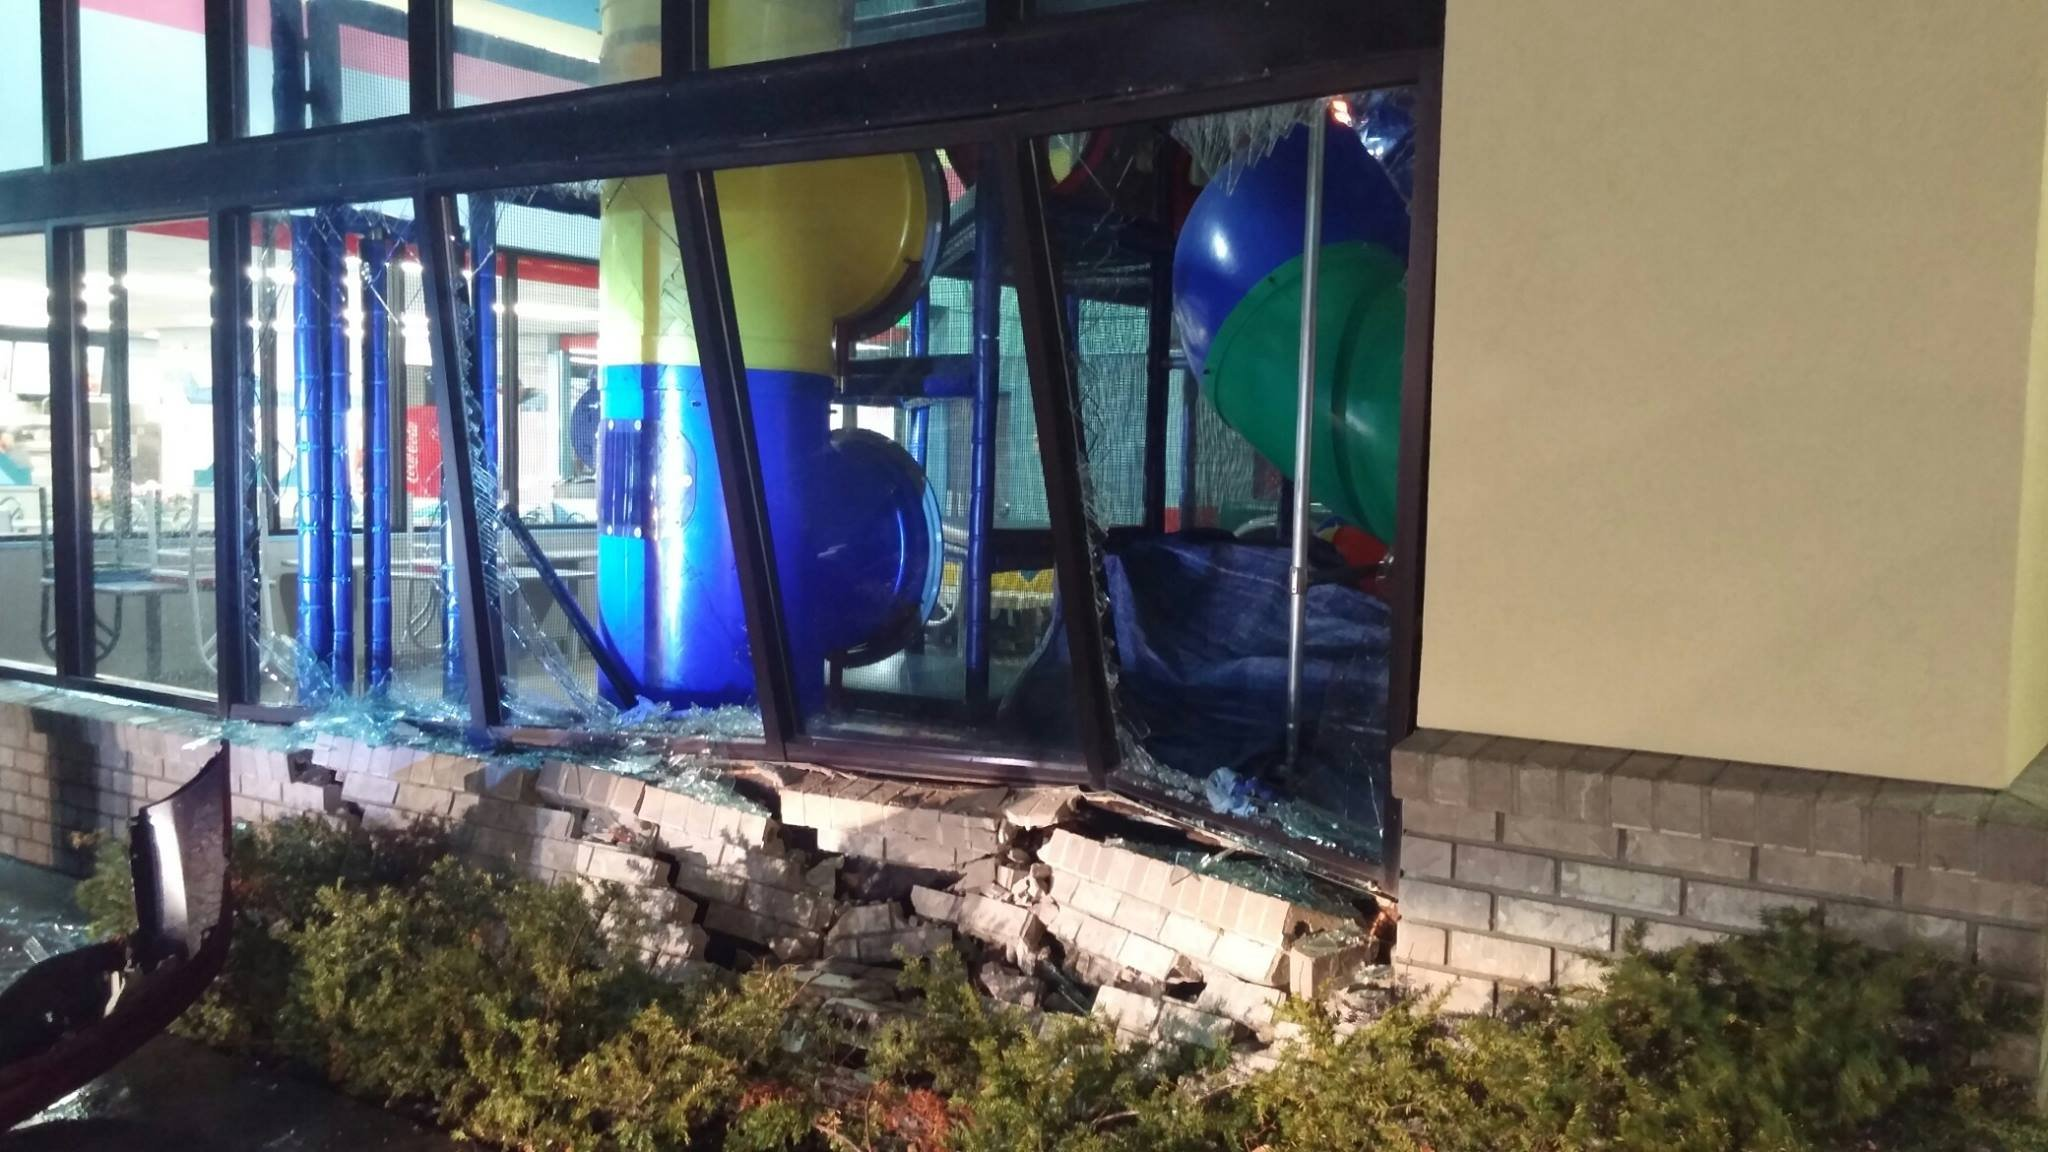 Driver crashed into Burger King building in Kennewick